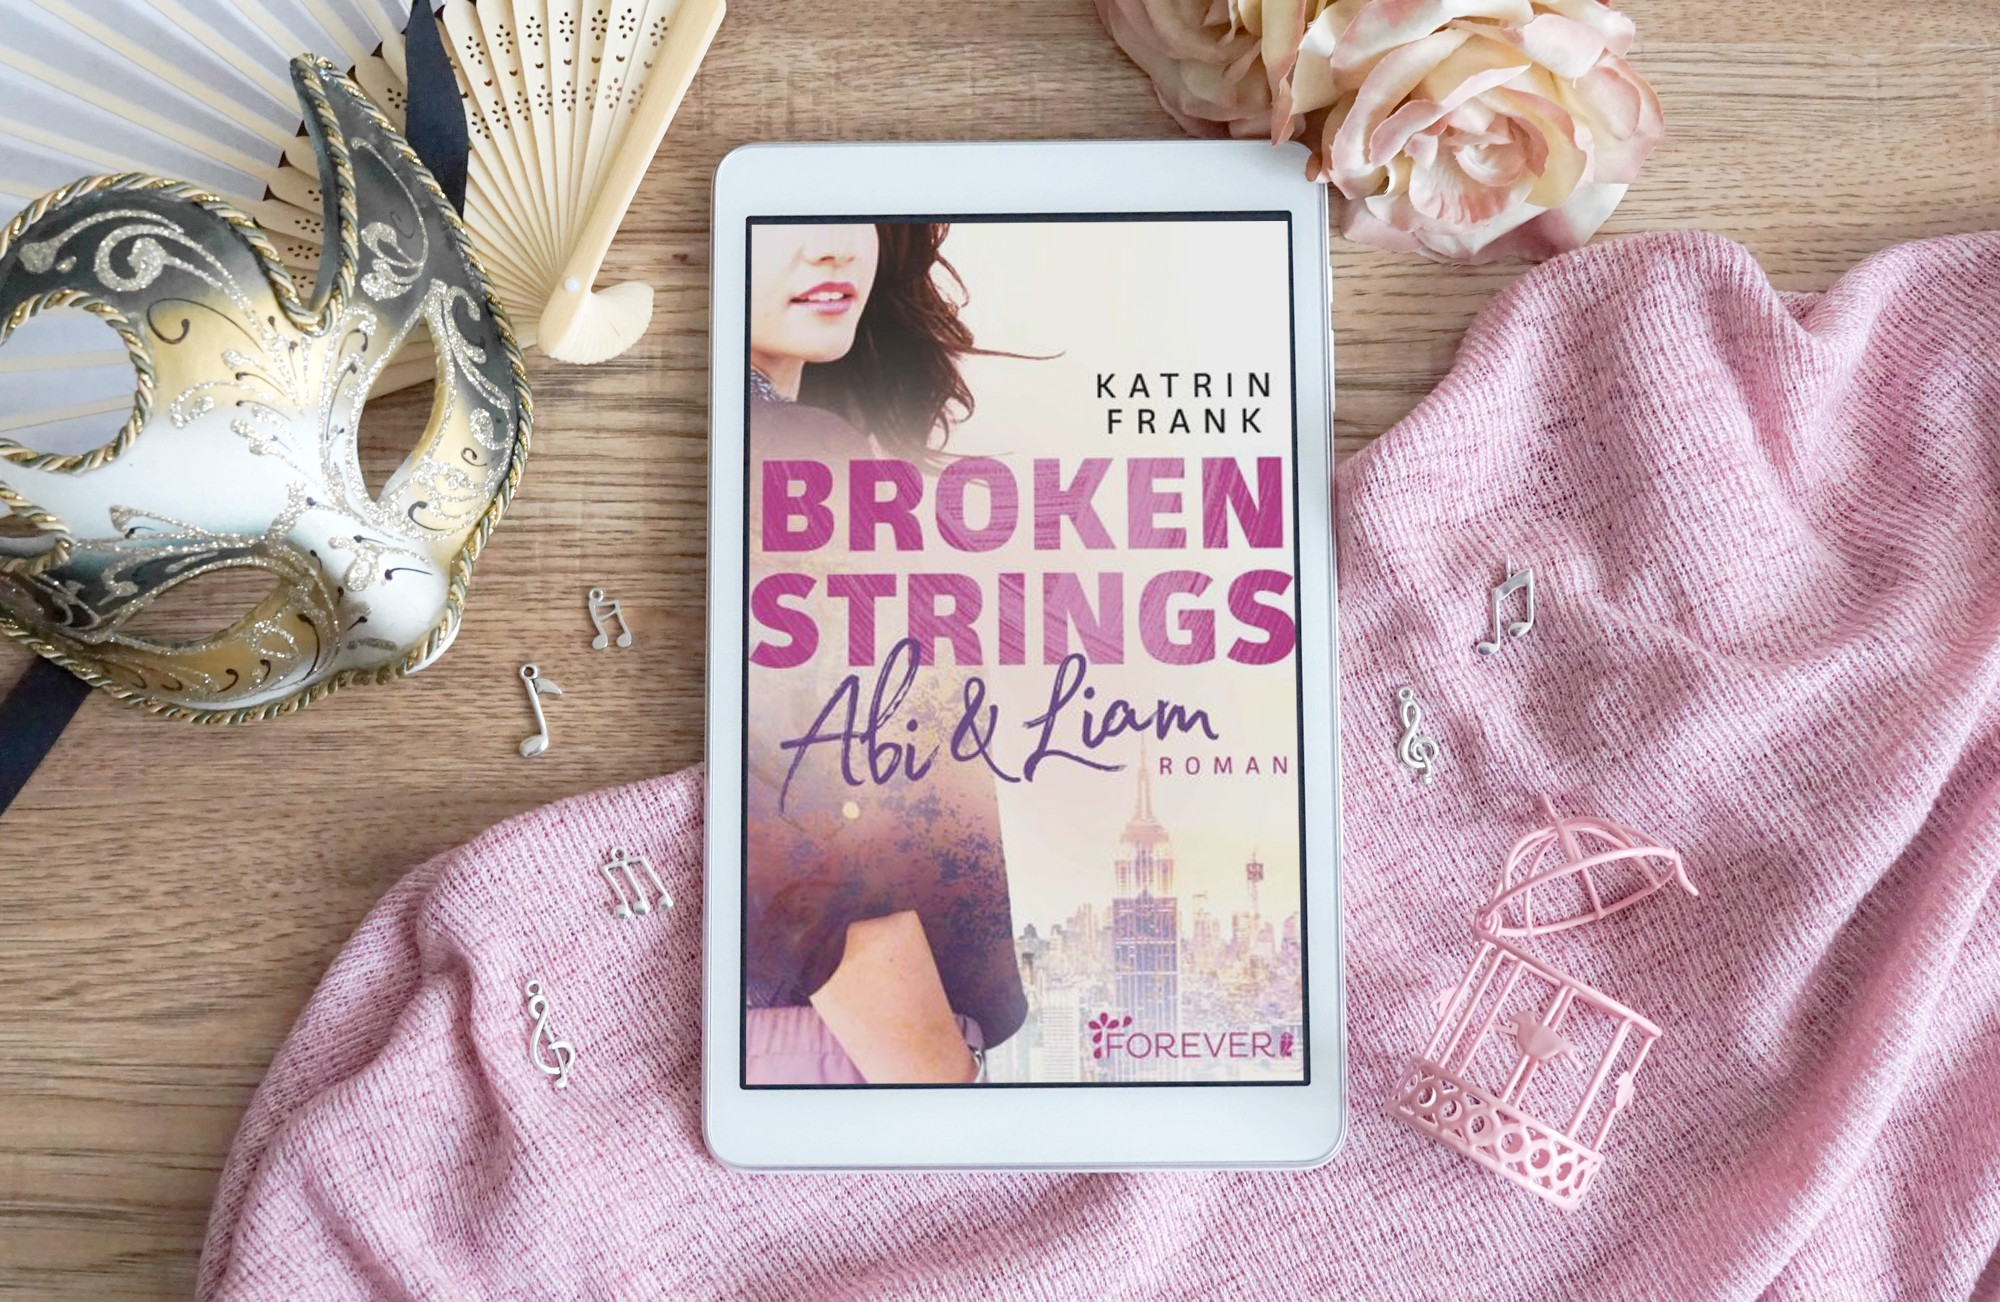 Broken Strings – Katrin Frank